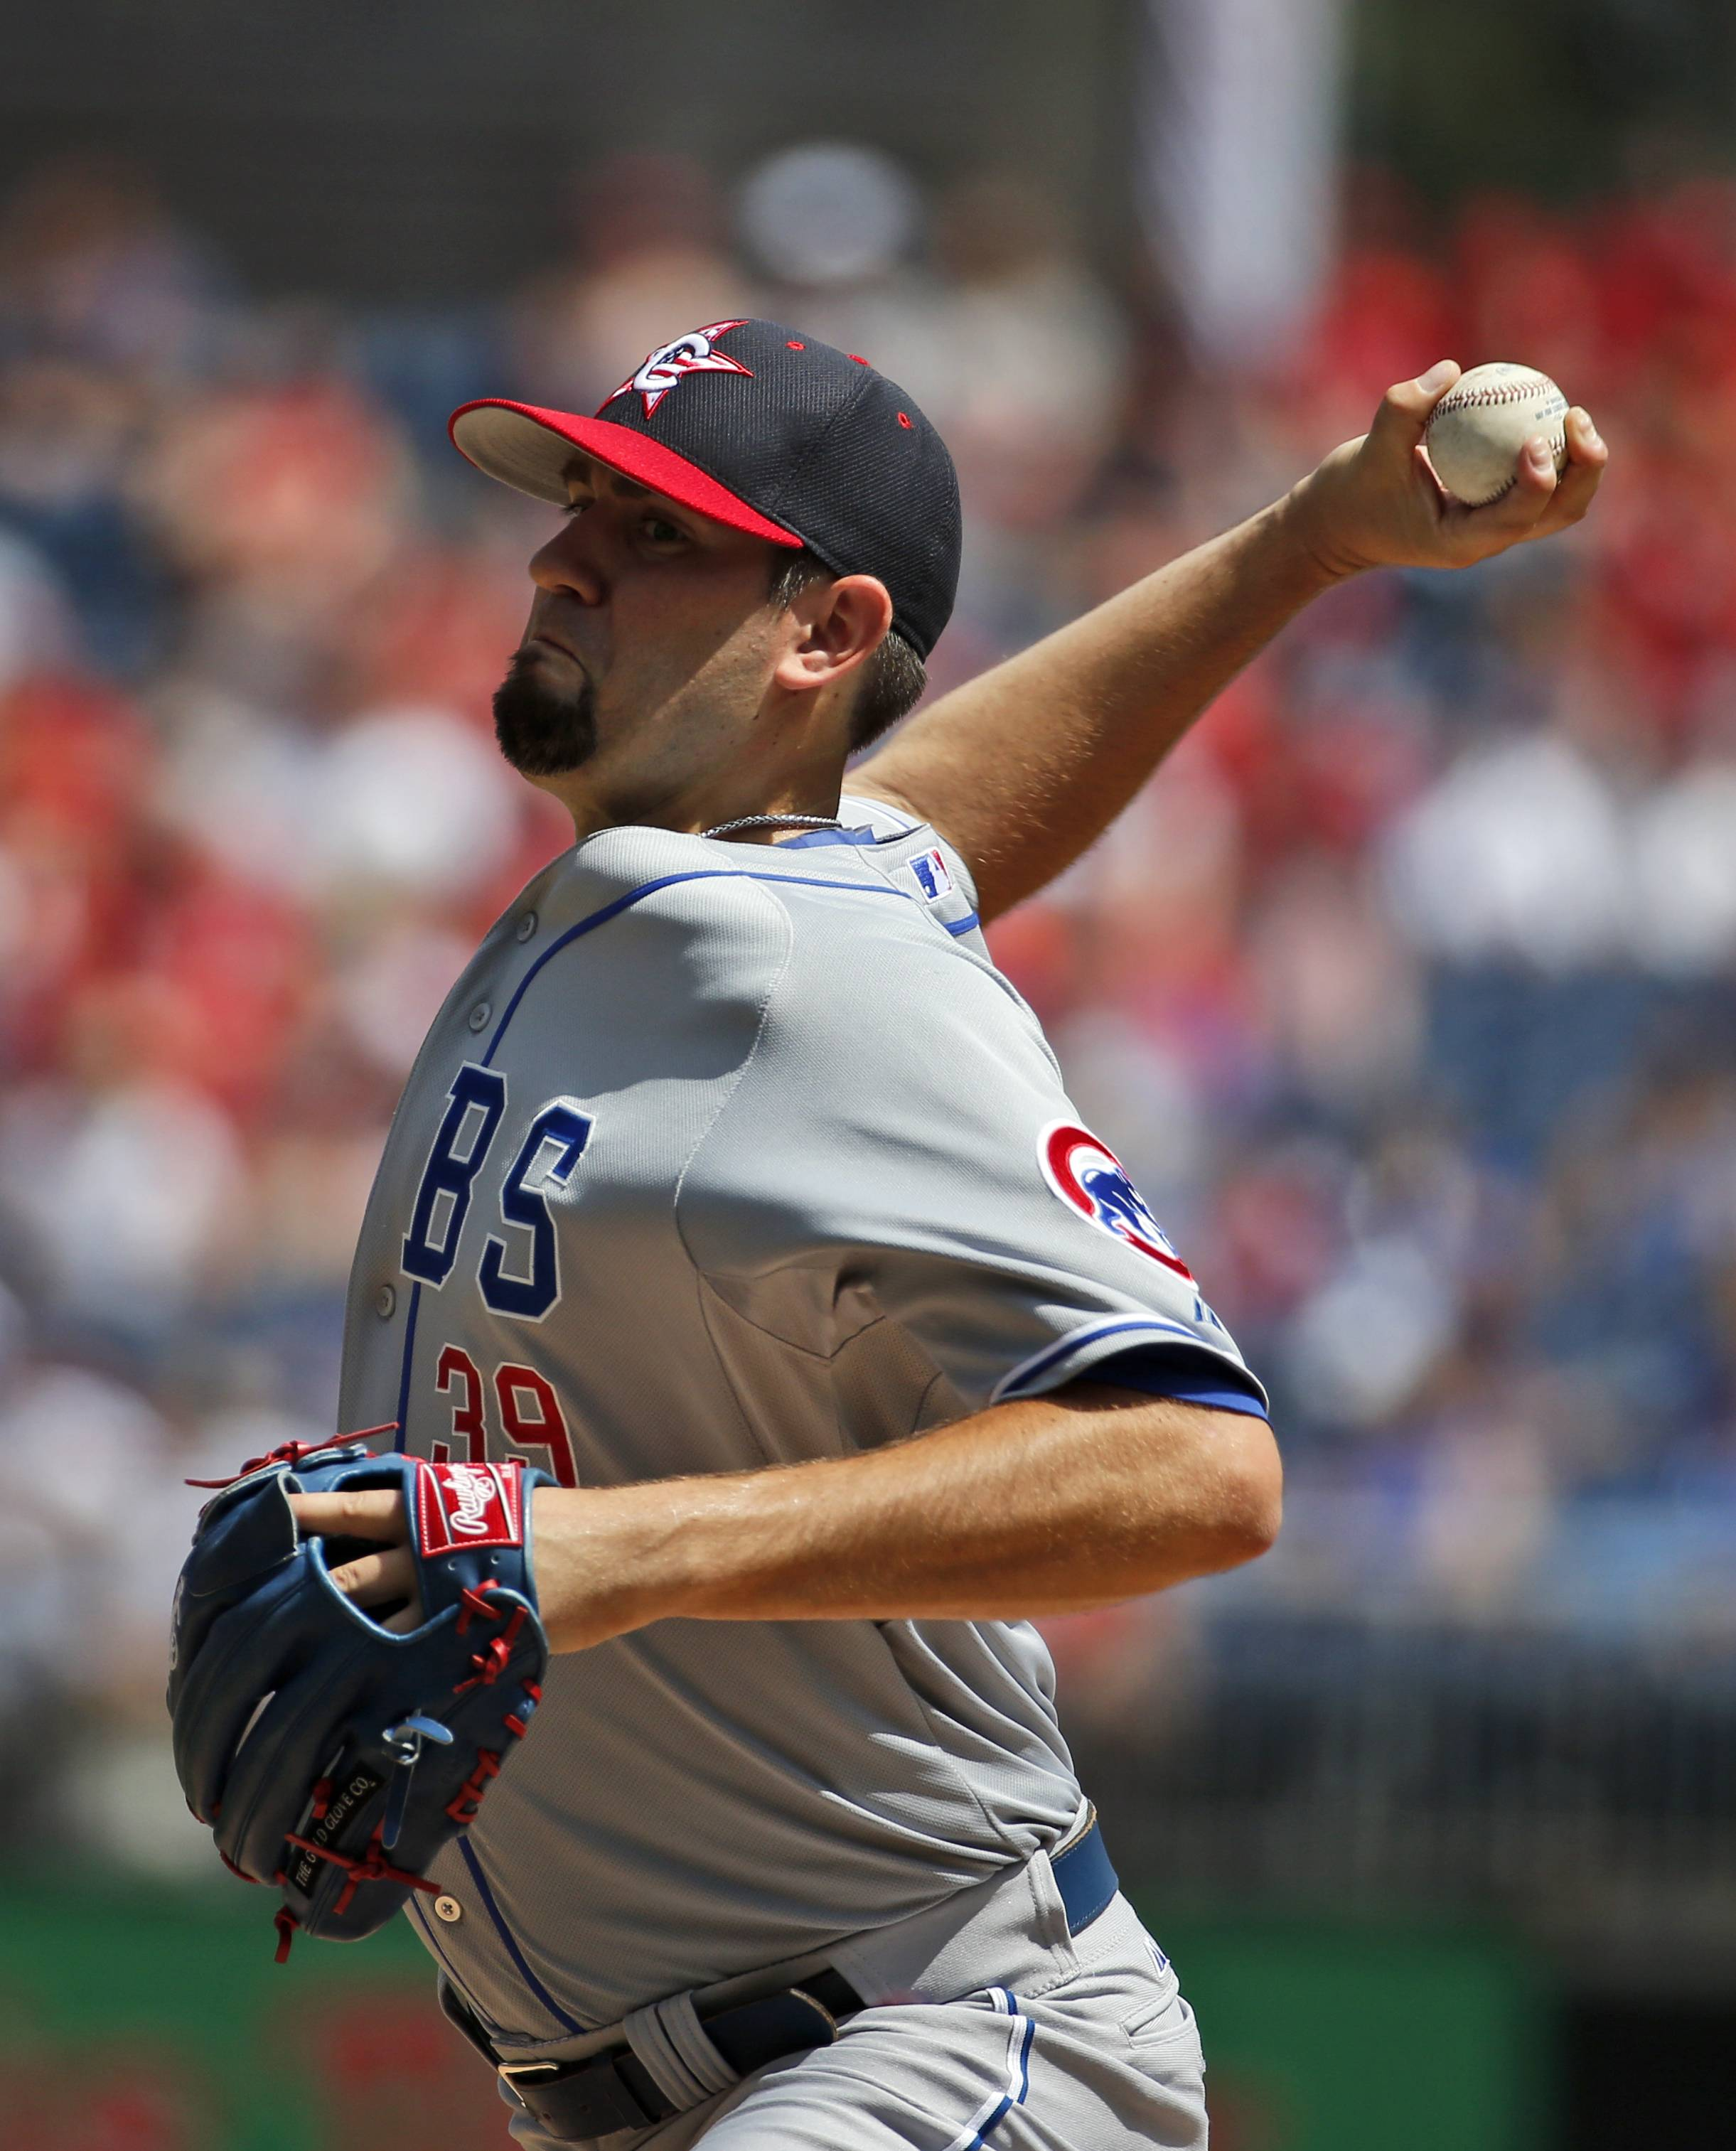 Pitcher Jason Hammel got the win for the Cubs on Friday, then was traded.